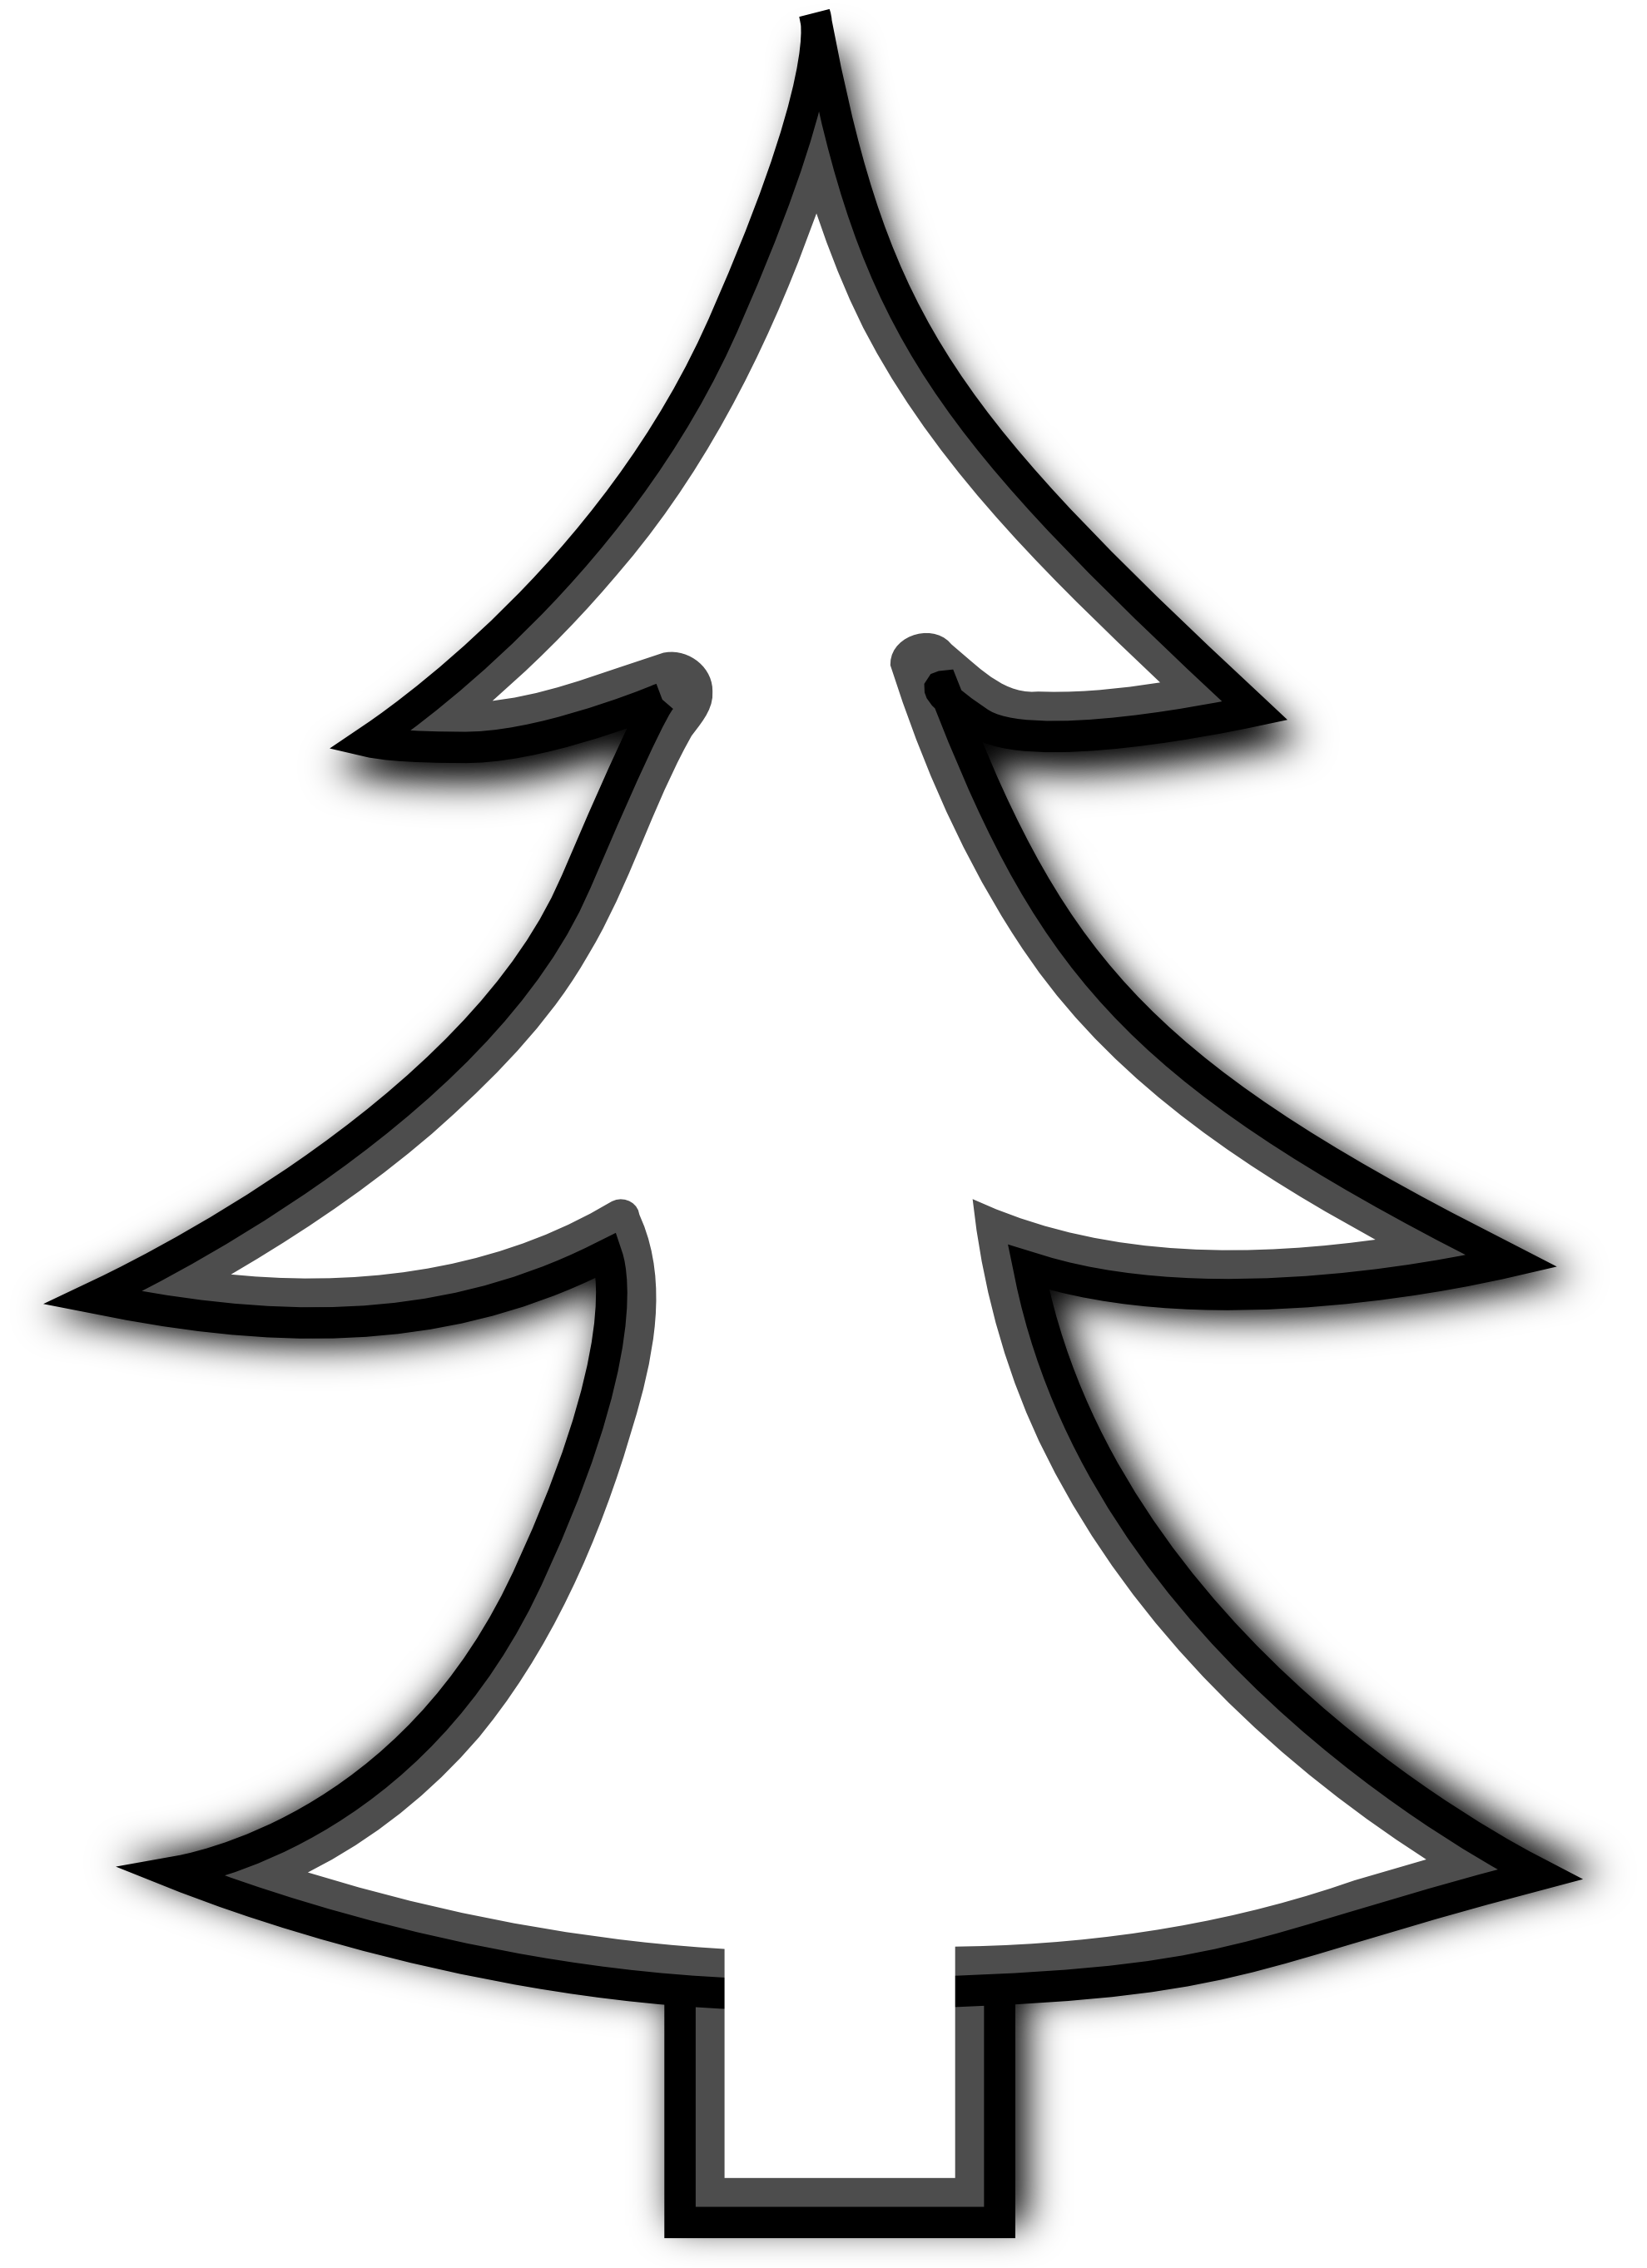 Clip art christmas tree. Clipart mountains black and white